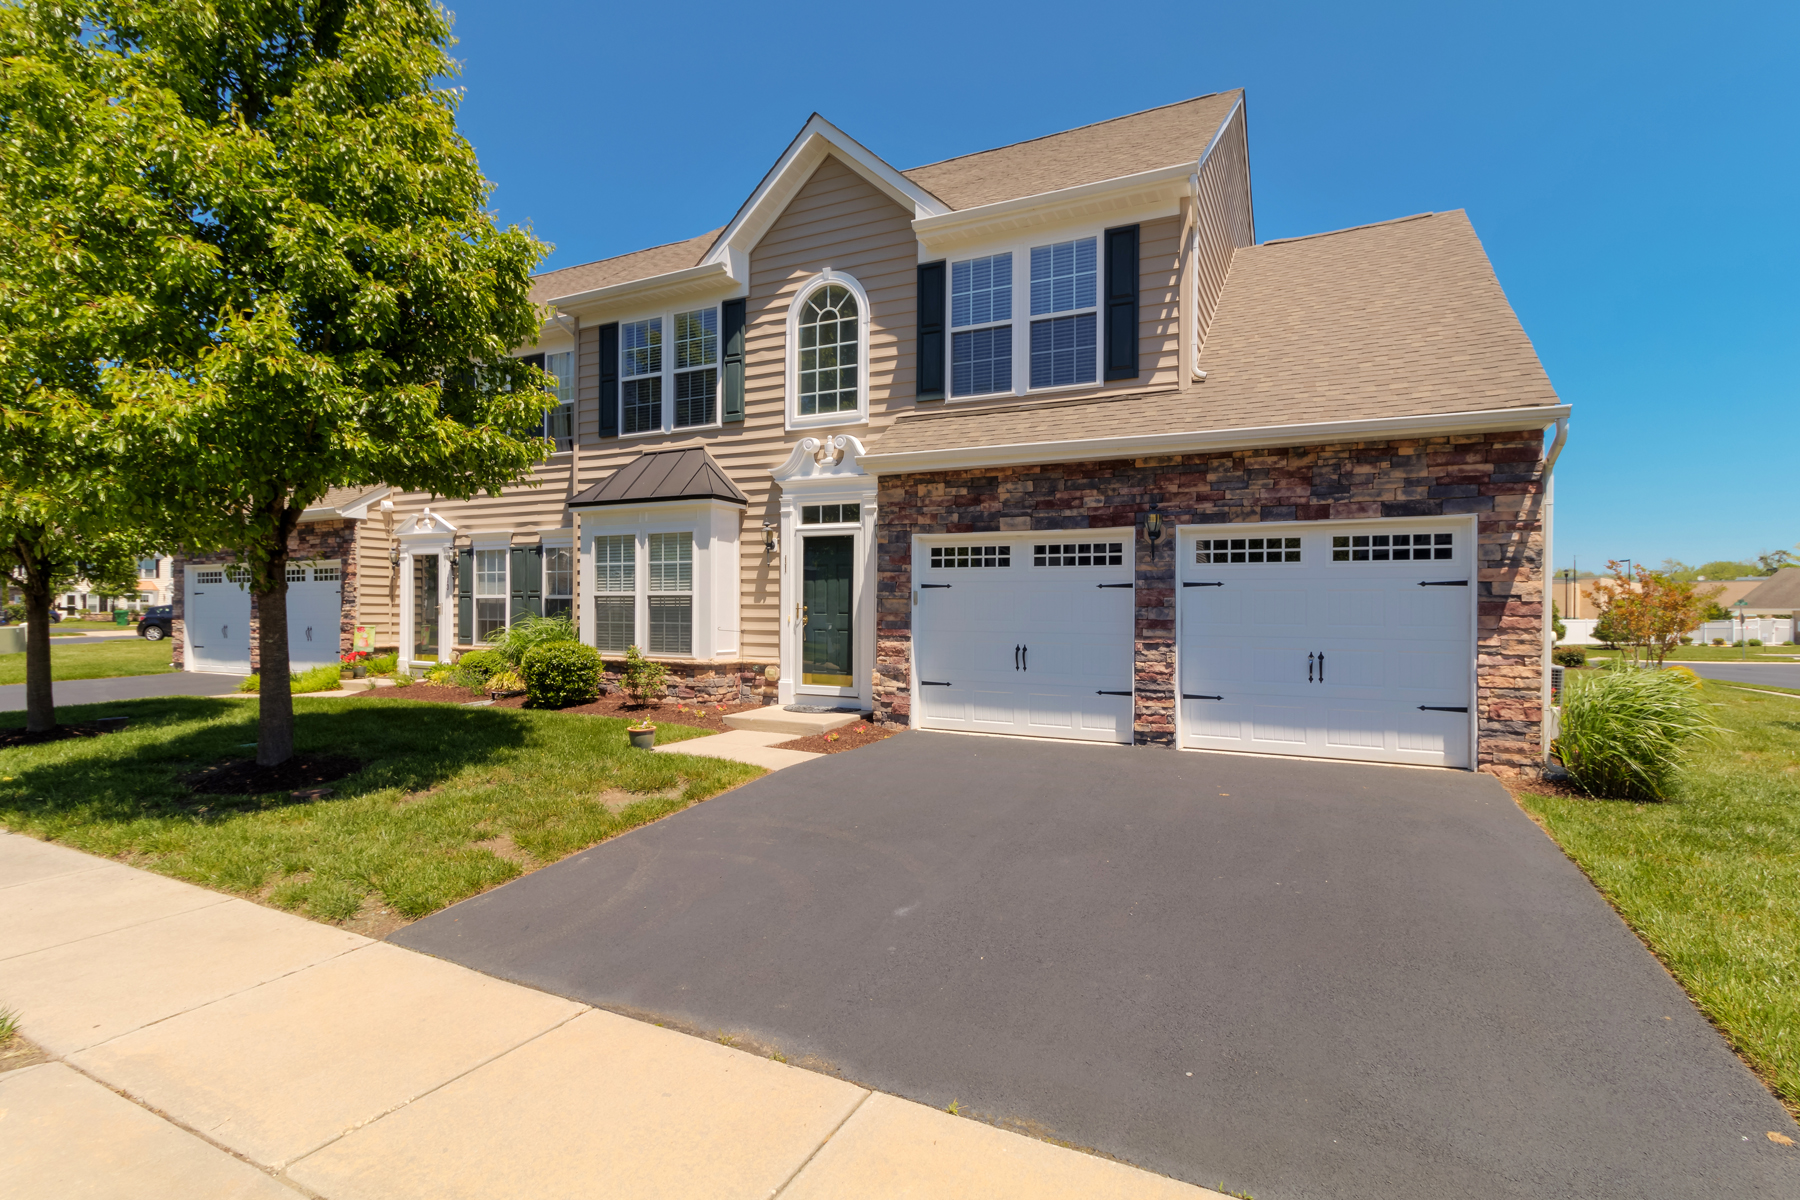 Condominium for Sale at 11 Daylily Lane , Millville, DE 19967 11 Daylily Lane Millville, Delaware 19967 United States